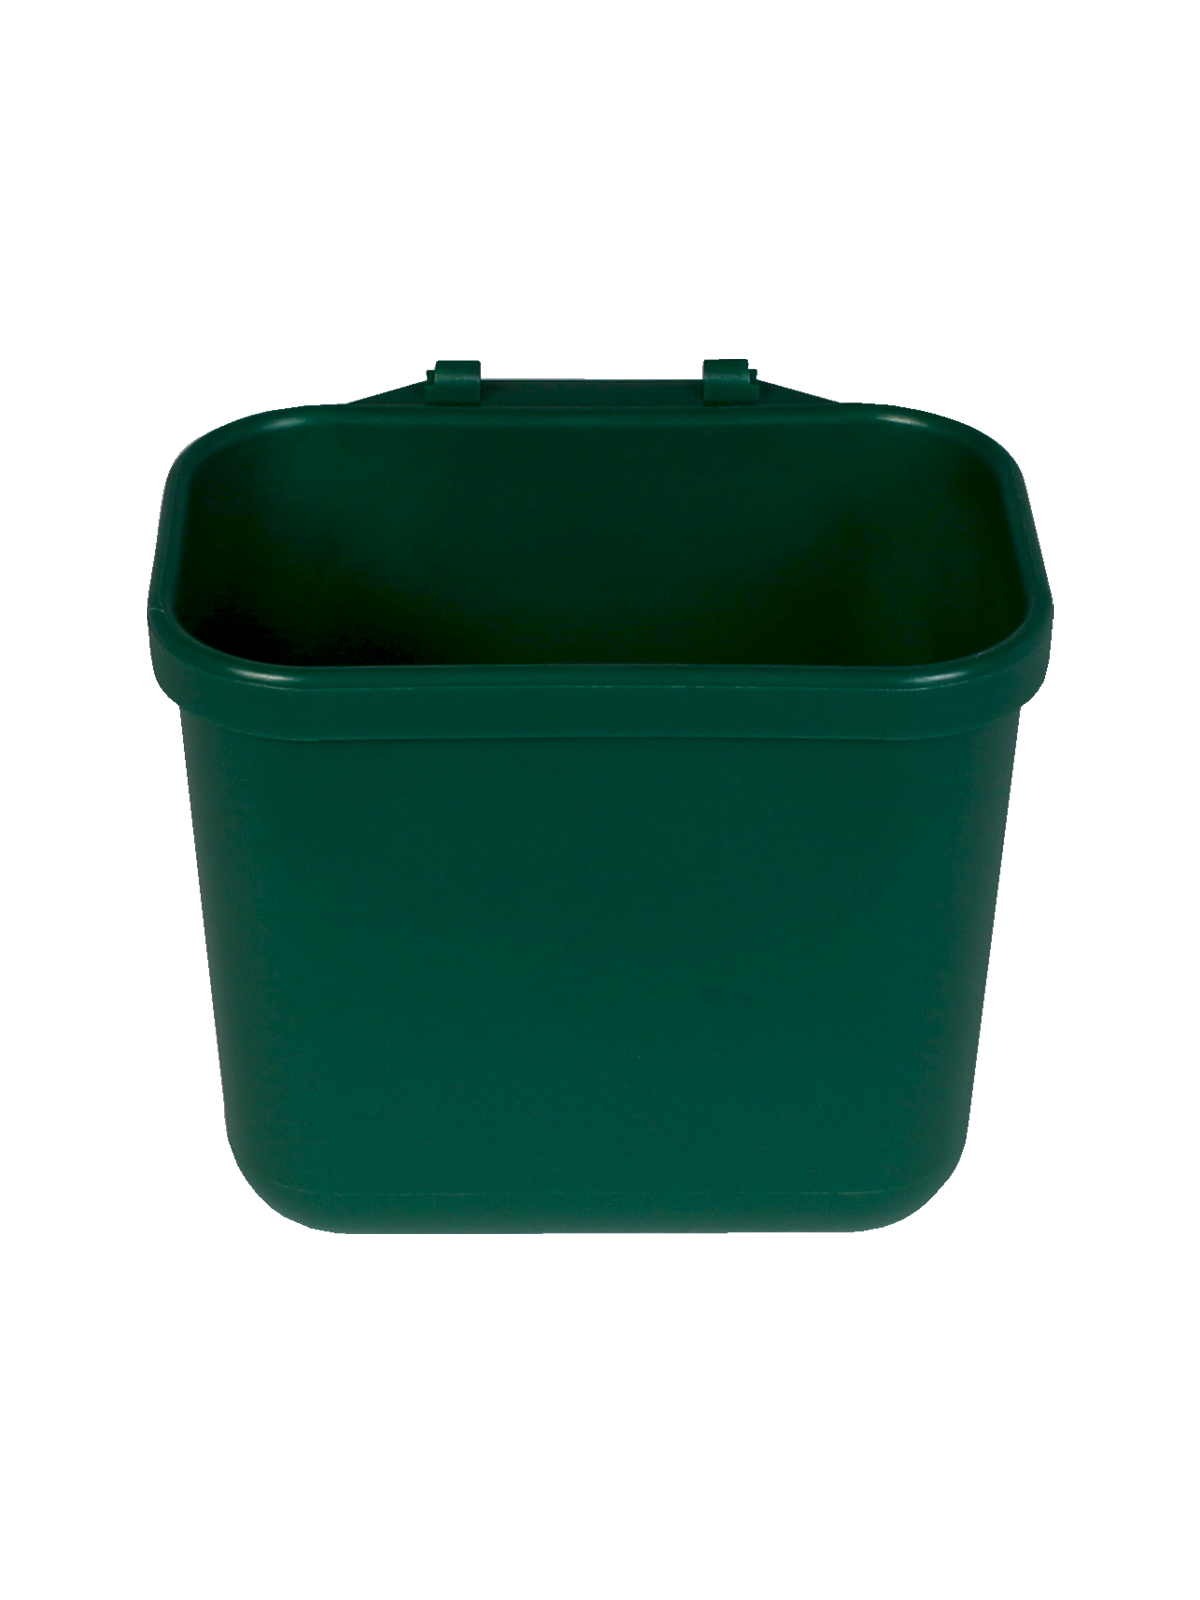 HANGING WASTE BASKET - Single - Body - Dark Green